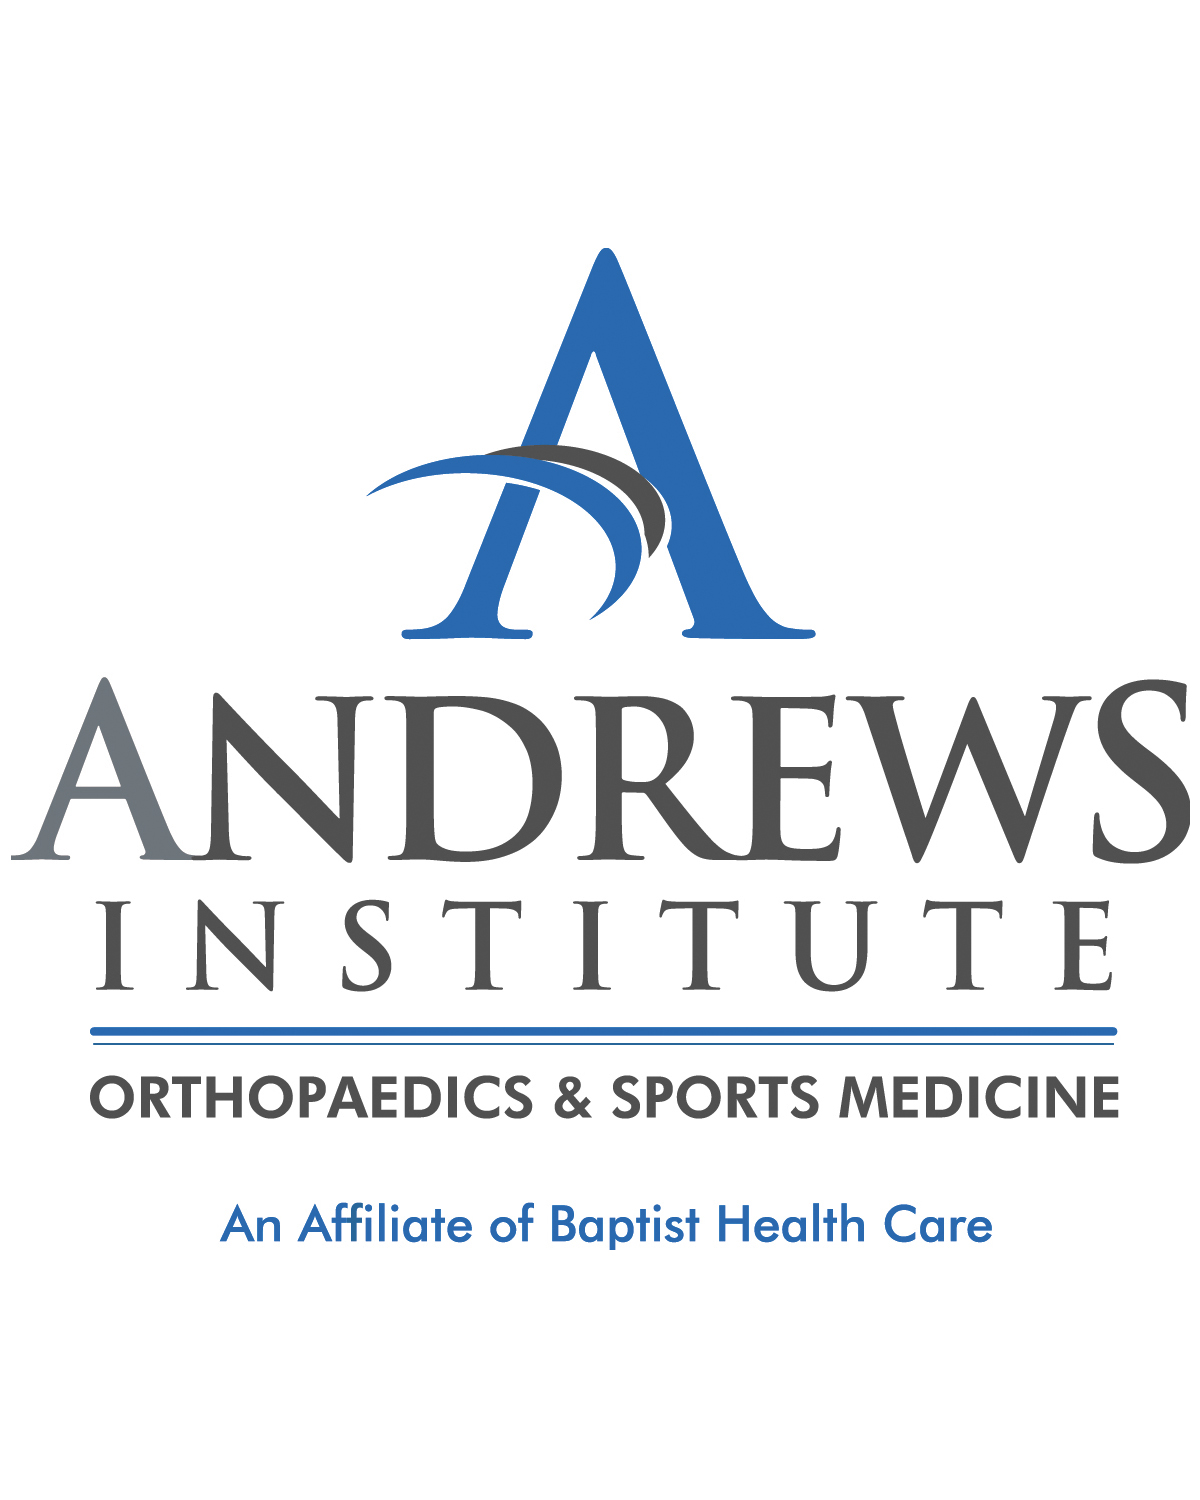 Evidence-Based Medicine, Research is Key to Andrews Institute's Use of Regenerative Medicine